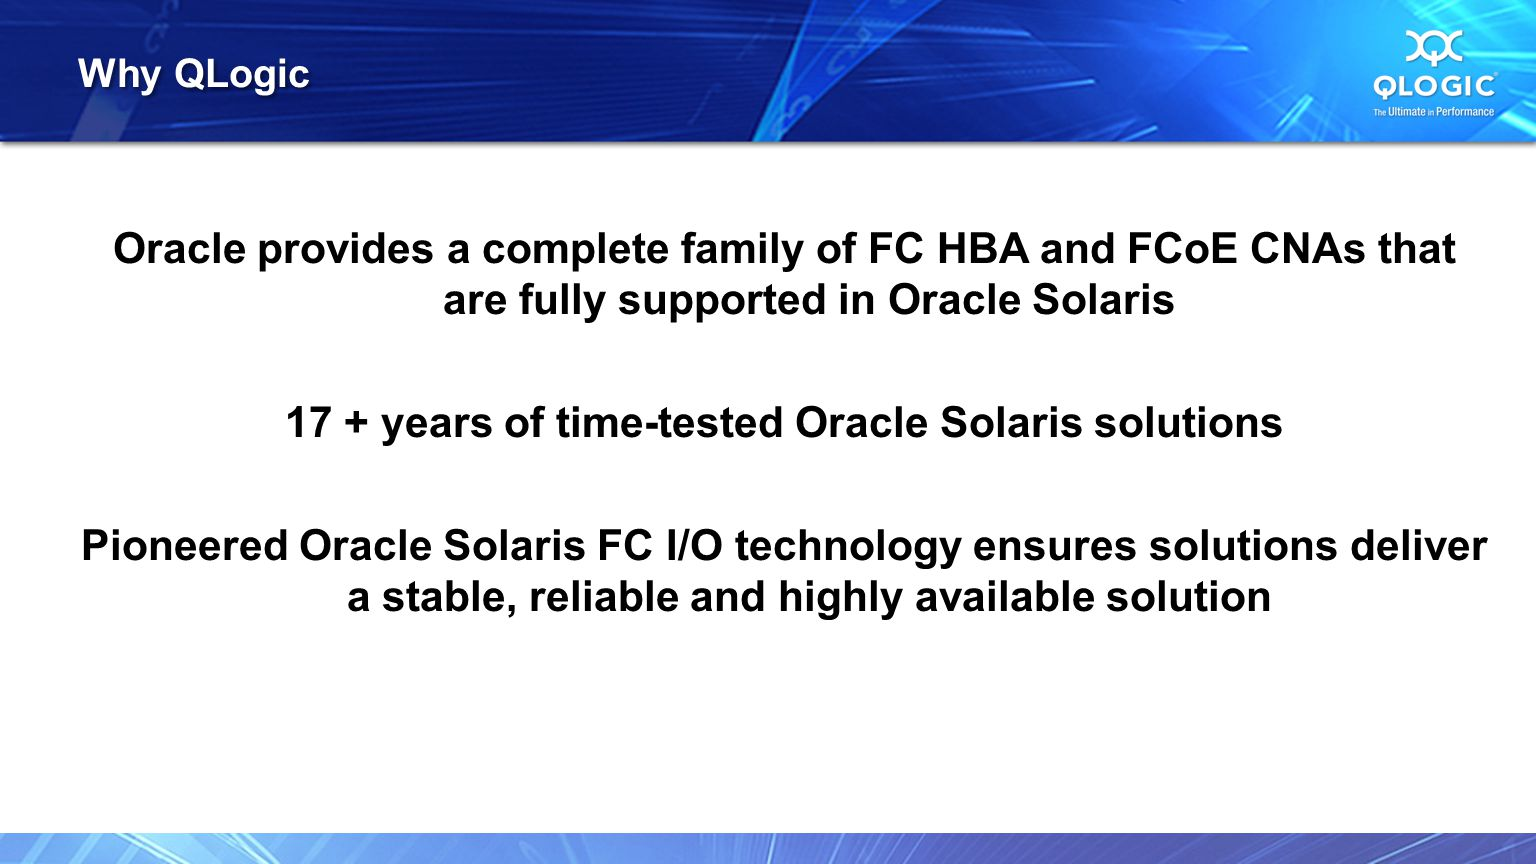 Why QLogic Oracle provides a complete family of FC HBA and FCoE CNAs that are fully supported in Oracle Solaris 17 + years of time-tested Oracle Solaris solutions Pioneered Oracle Solaris FC I/O technology ensures solutions deliver a stable, reliable and highly available solution